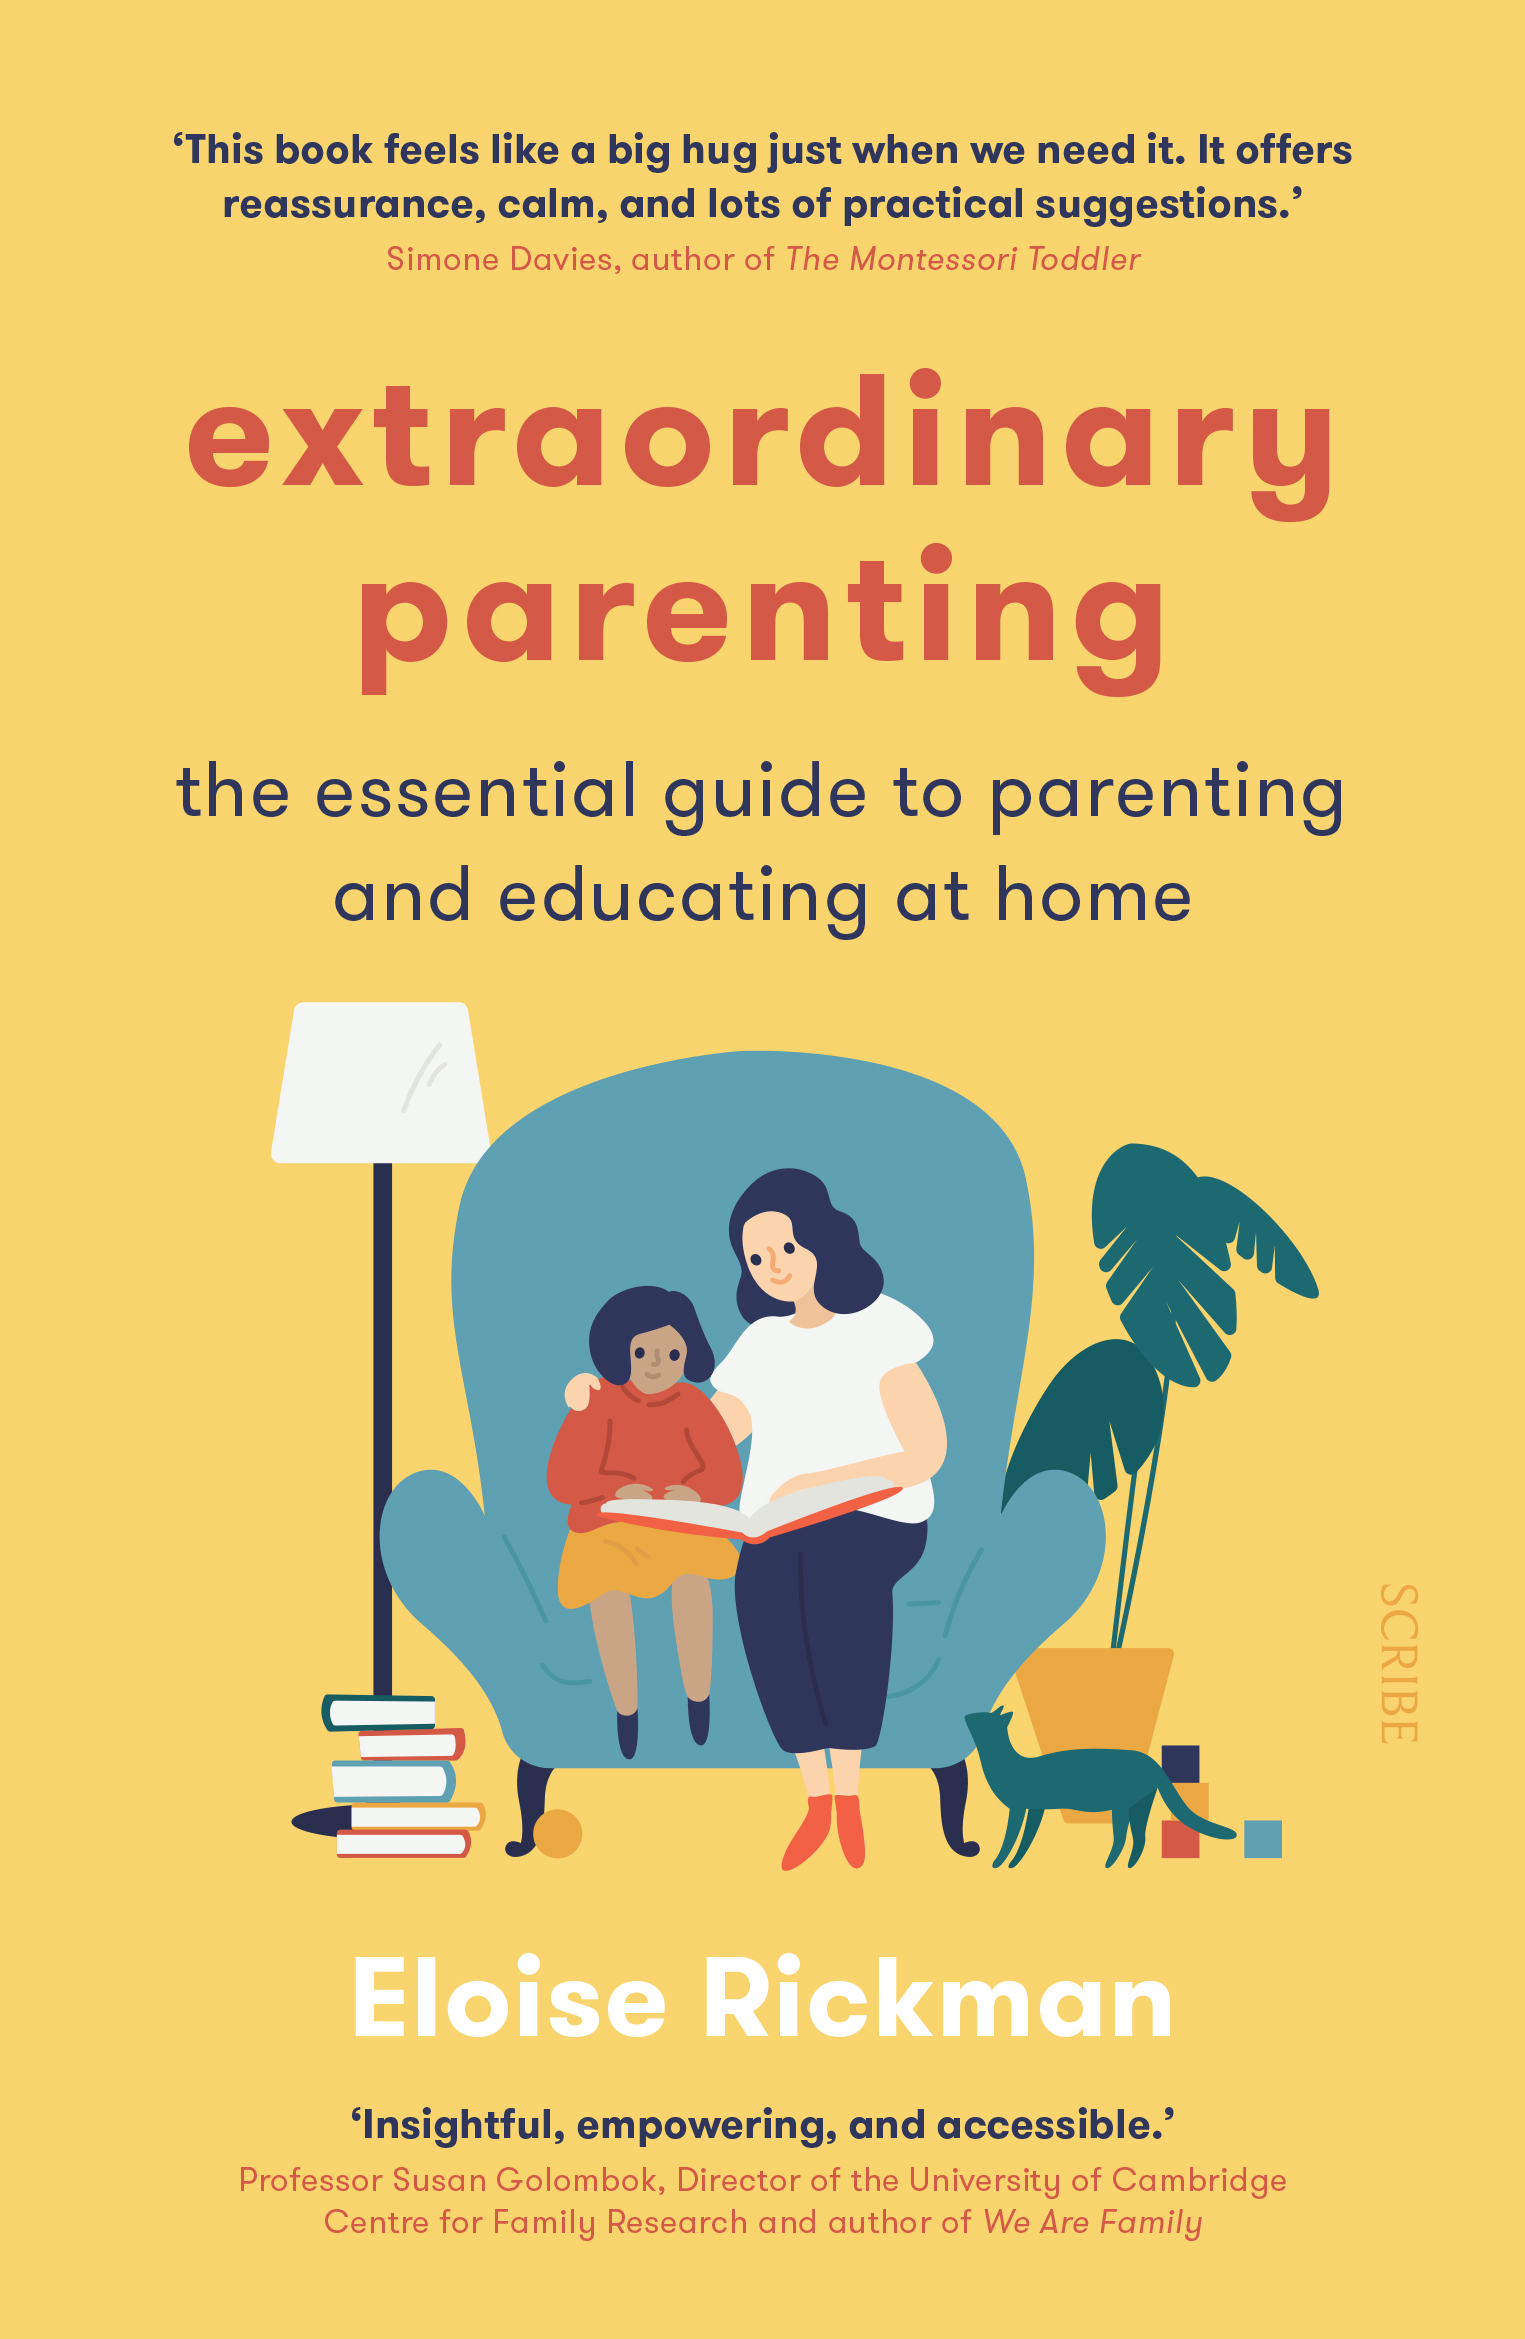 Extraordinary Parenting the essential guide to parenting and educating at home